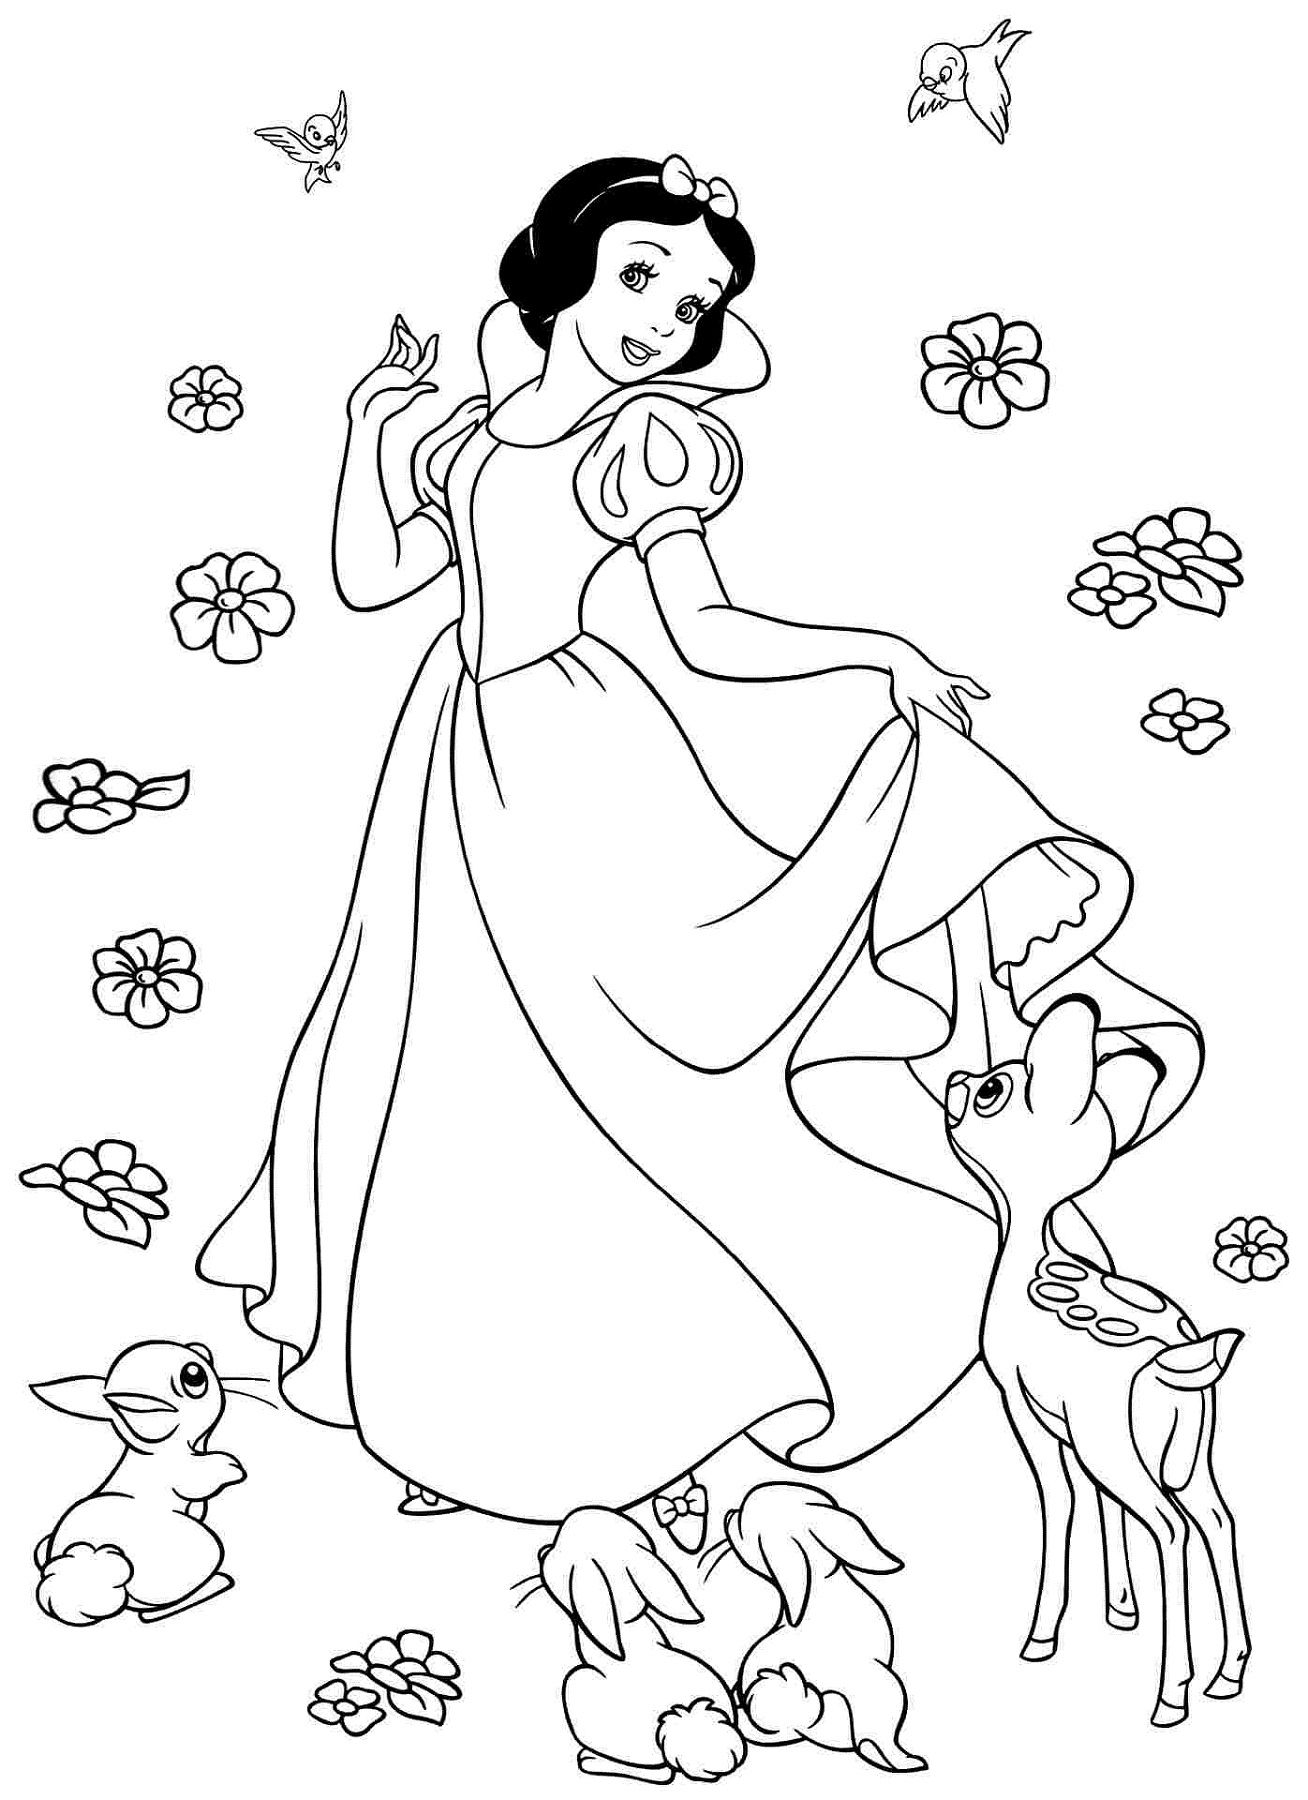 Snow White Color Pages To Print Disney Princess Coloring Pages Snow White Coloring Pages Princess Coloring Pages